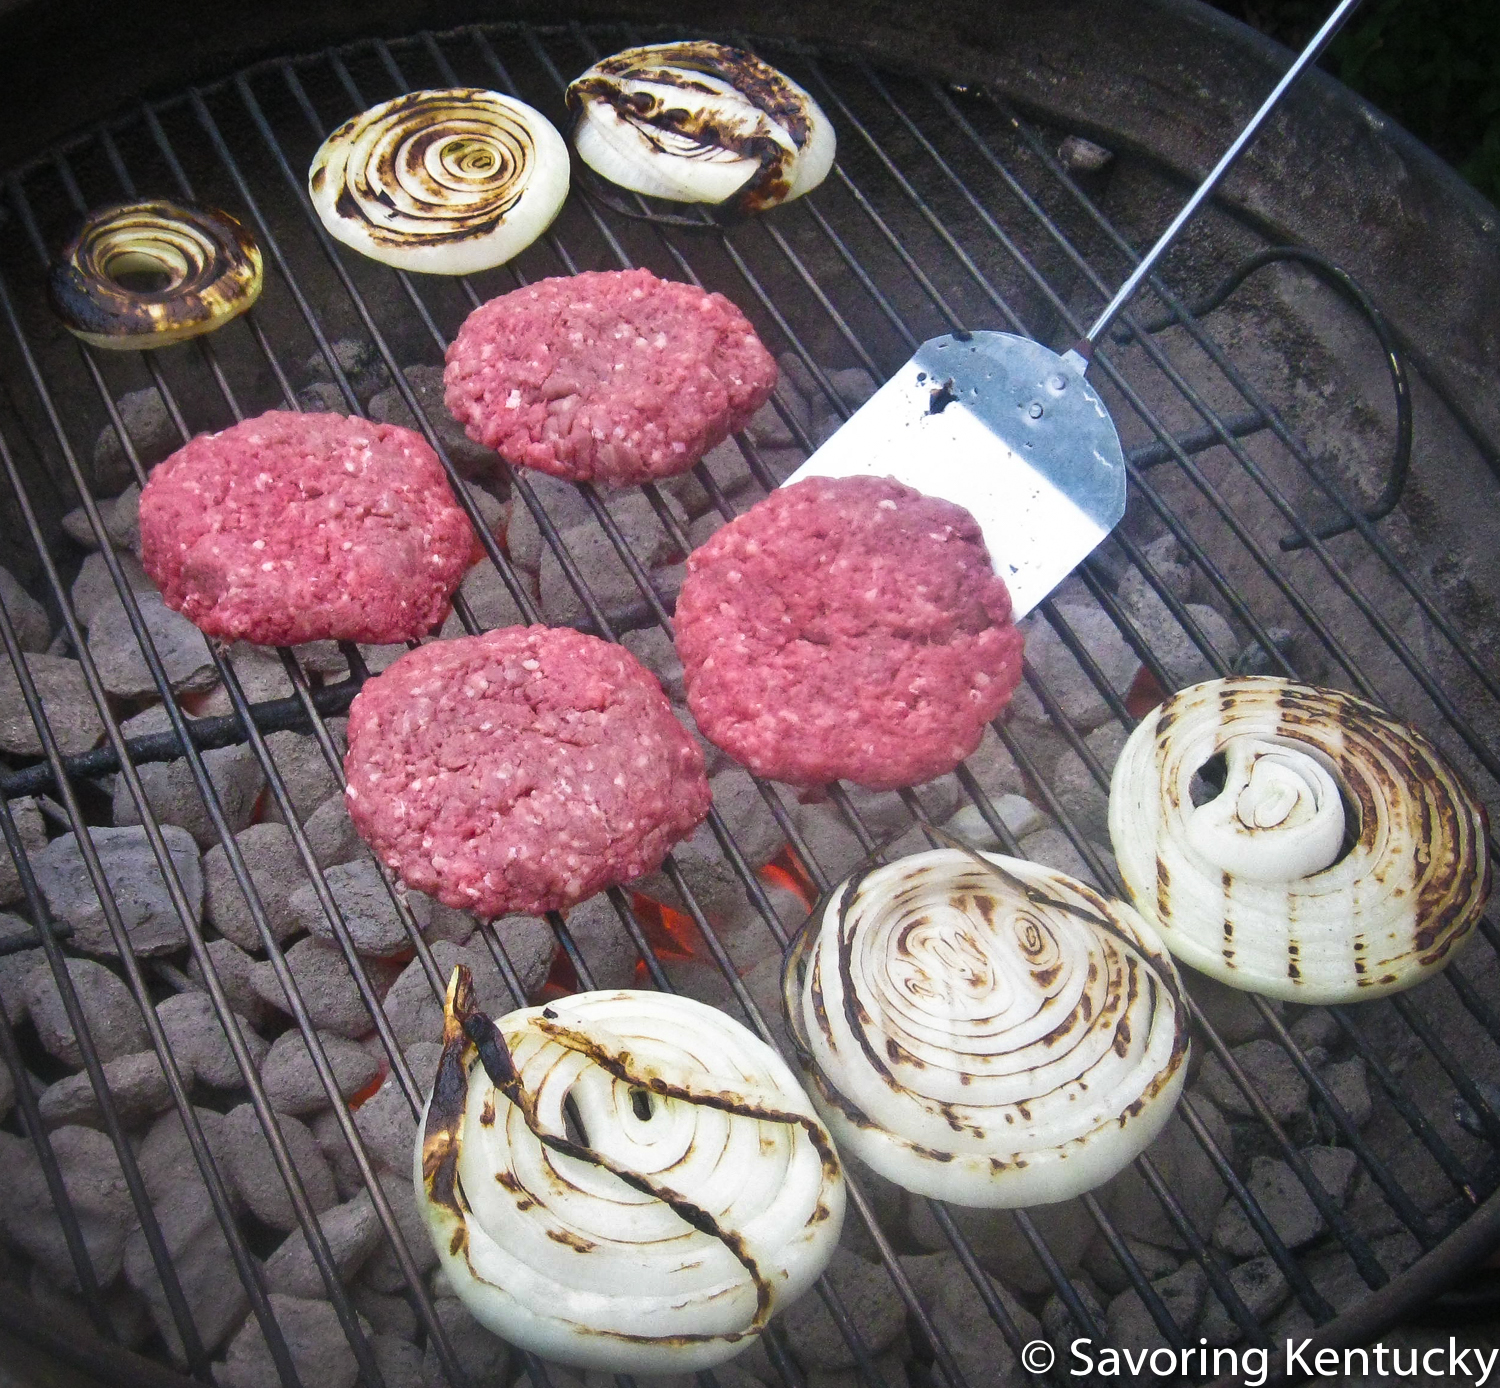 Elmwood Stock Farm  certified organic, pastured ground round burgers keep warm company with some Kentucky candy onion slices, preparing to grace a bun.